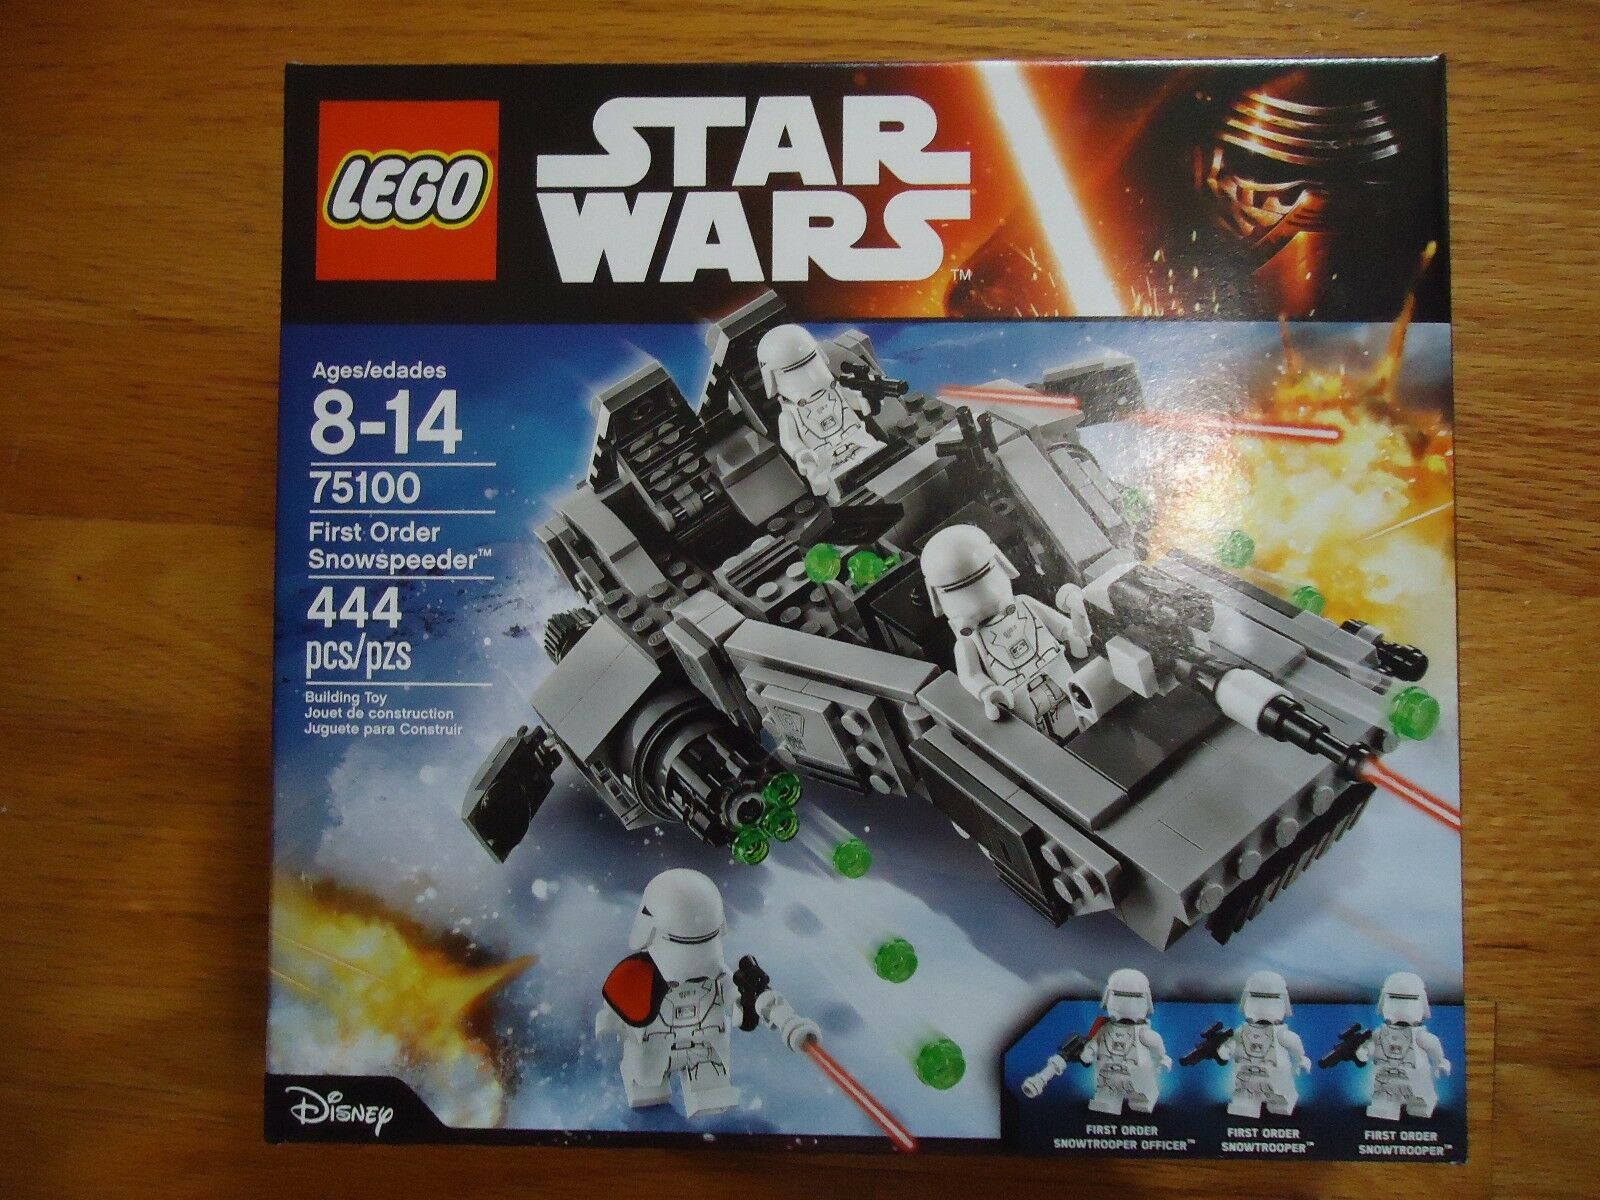 Star Wars The Force Awakens LEGO 75100 First Order Snowspeeder - NEW Sealed